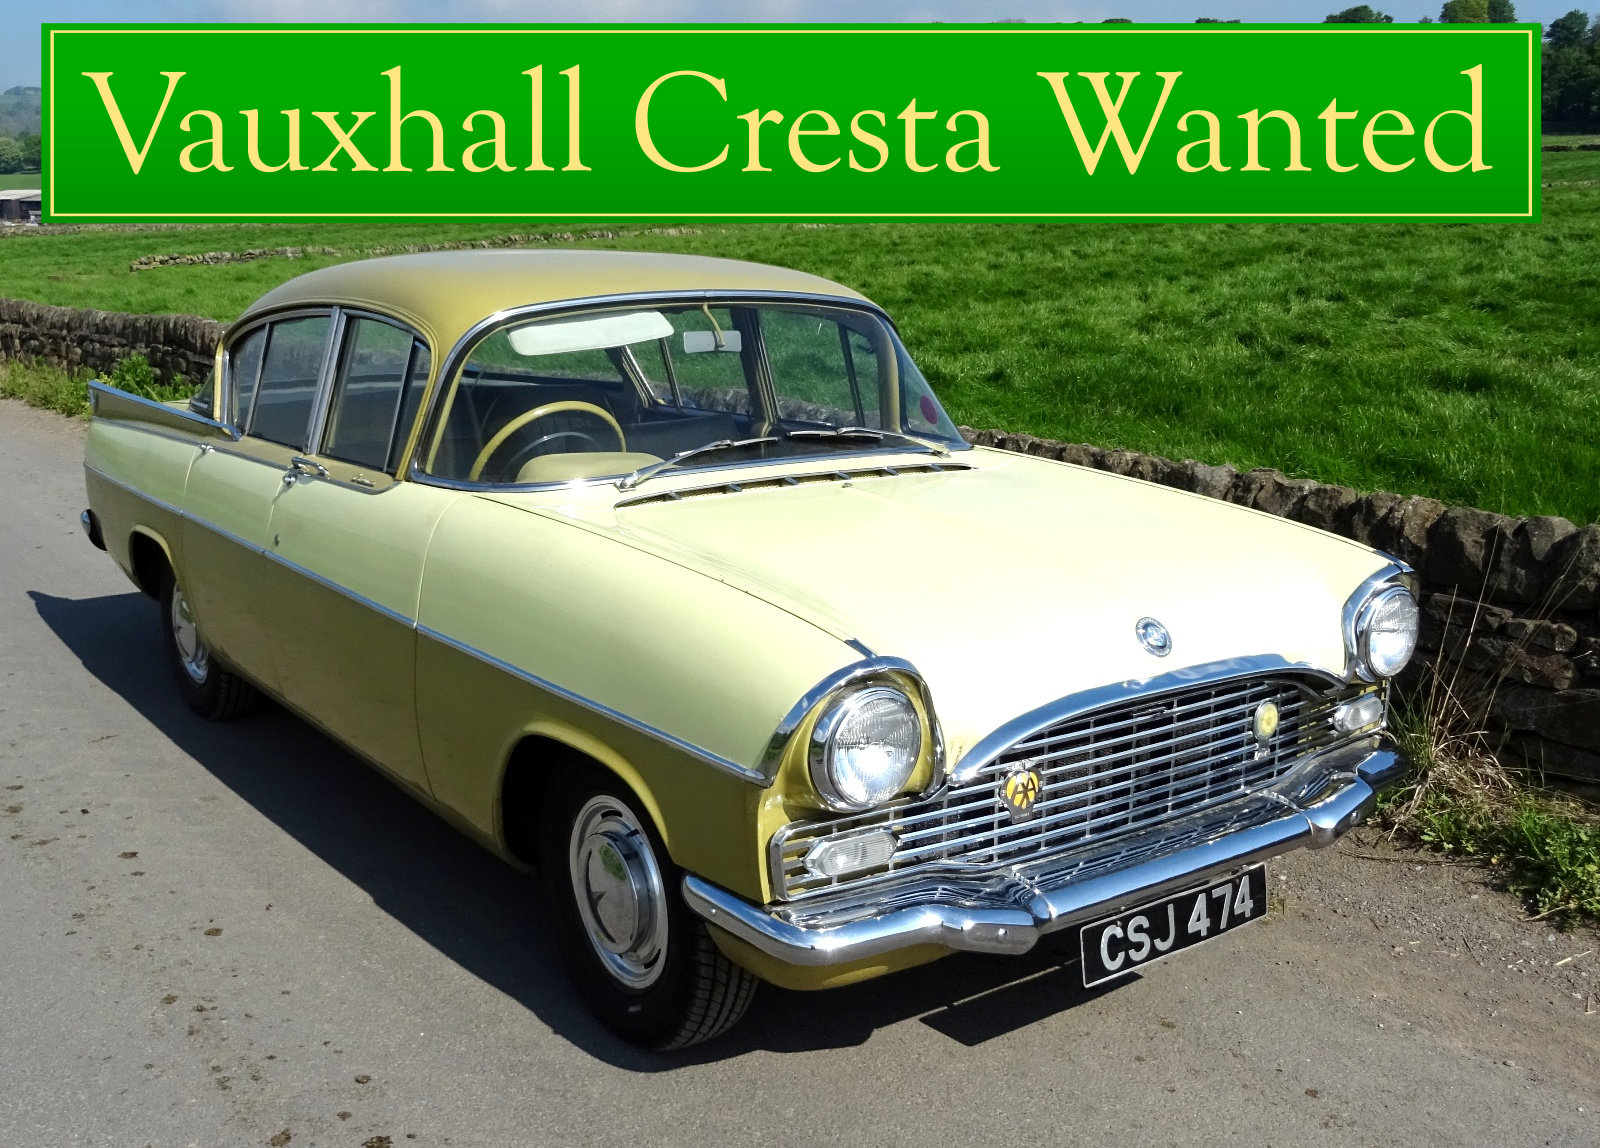 VAUXHALL VELOX WANTED, CLASSIC CARS WANTED, INSTANT PAYMENT Wanted (picture 2 of 6)